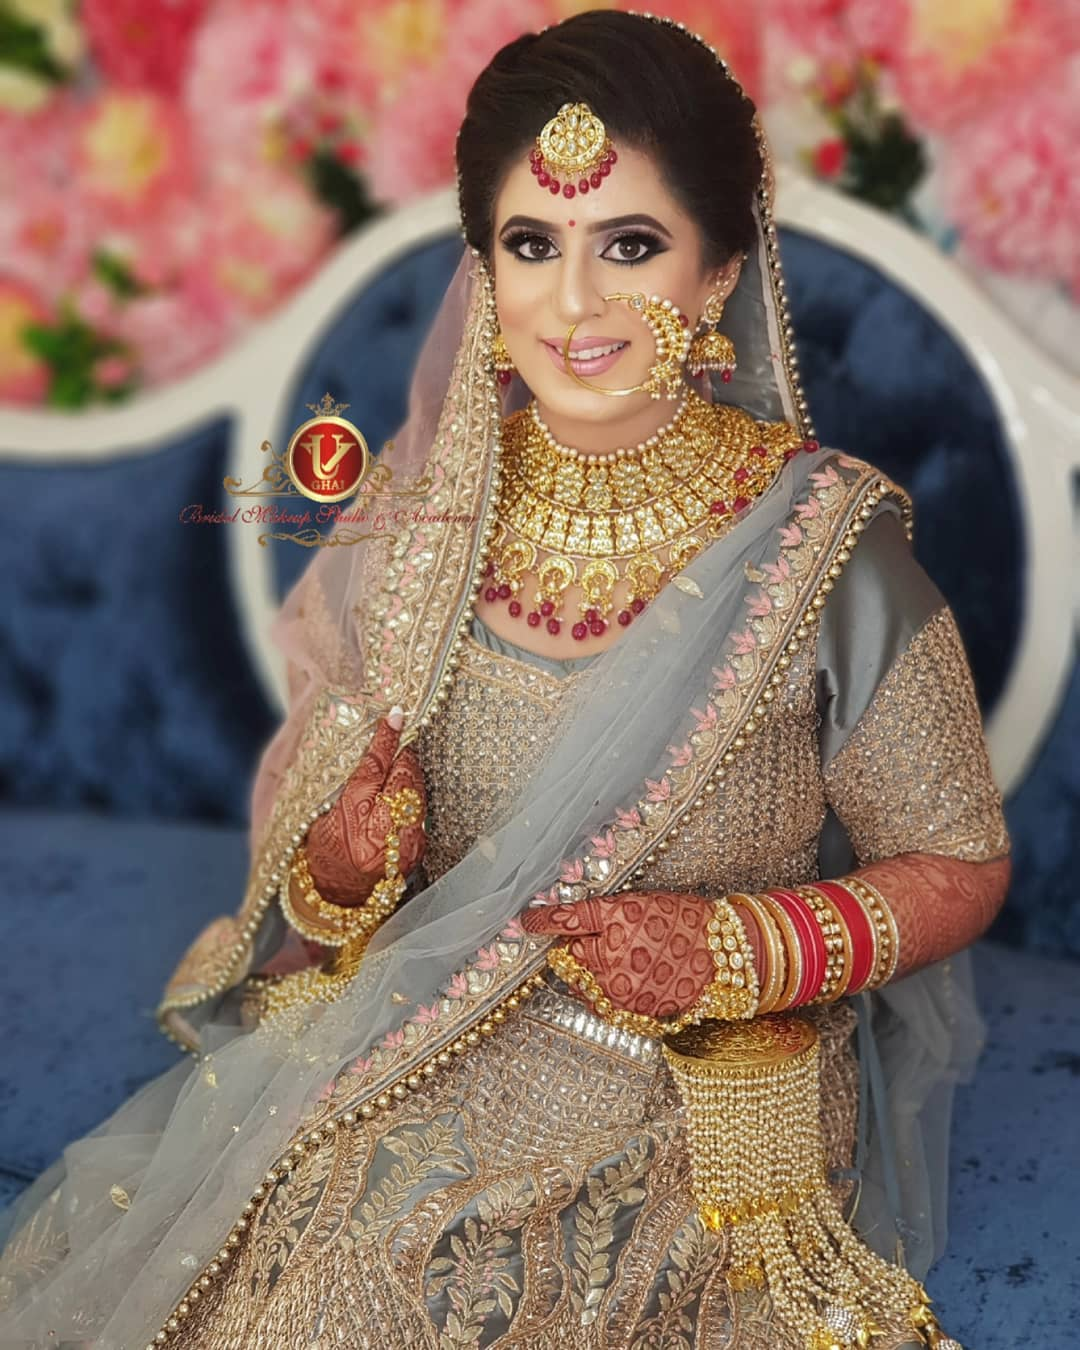 natural beauty in bridal makeup with jewellery, stylish hairstyles free images download hd